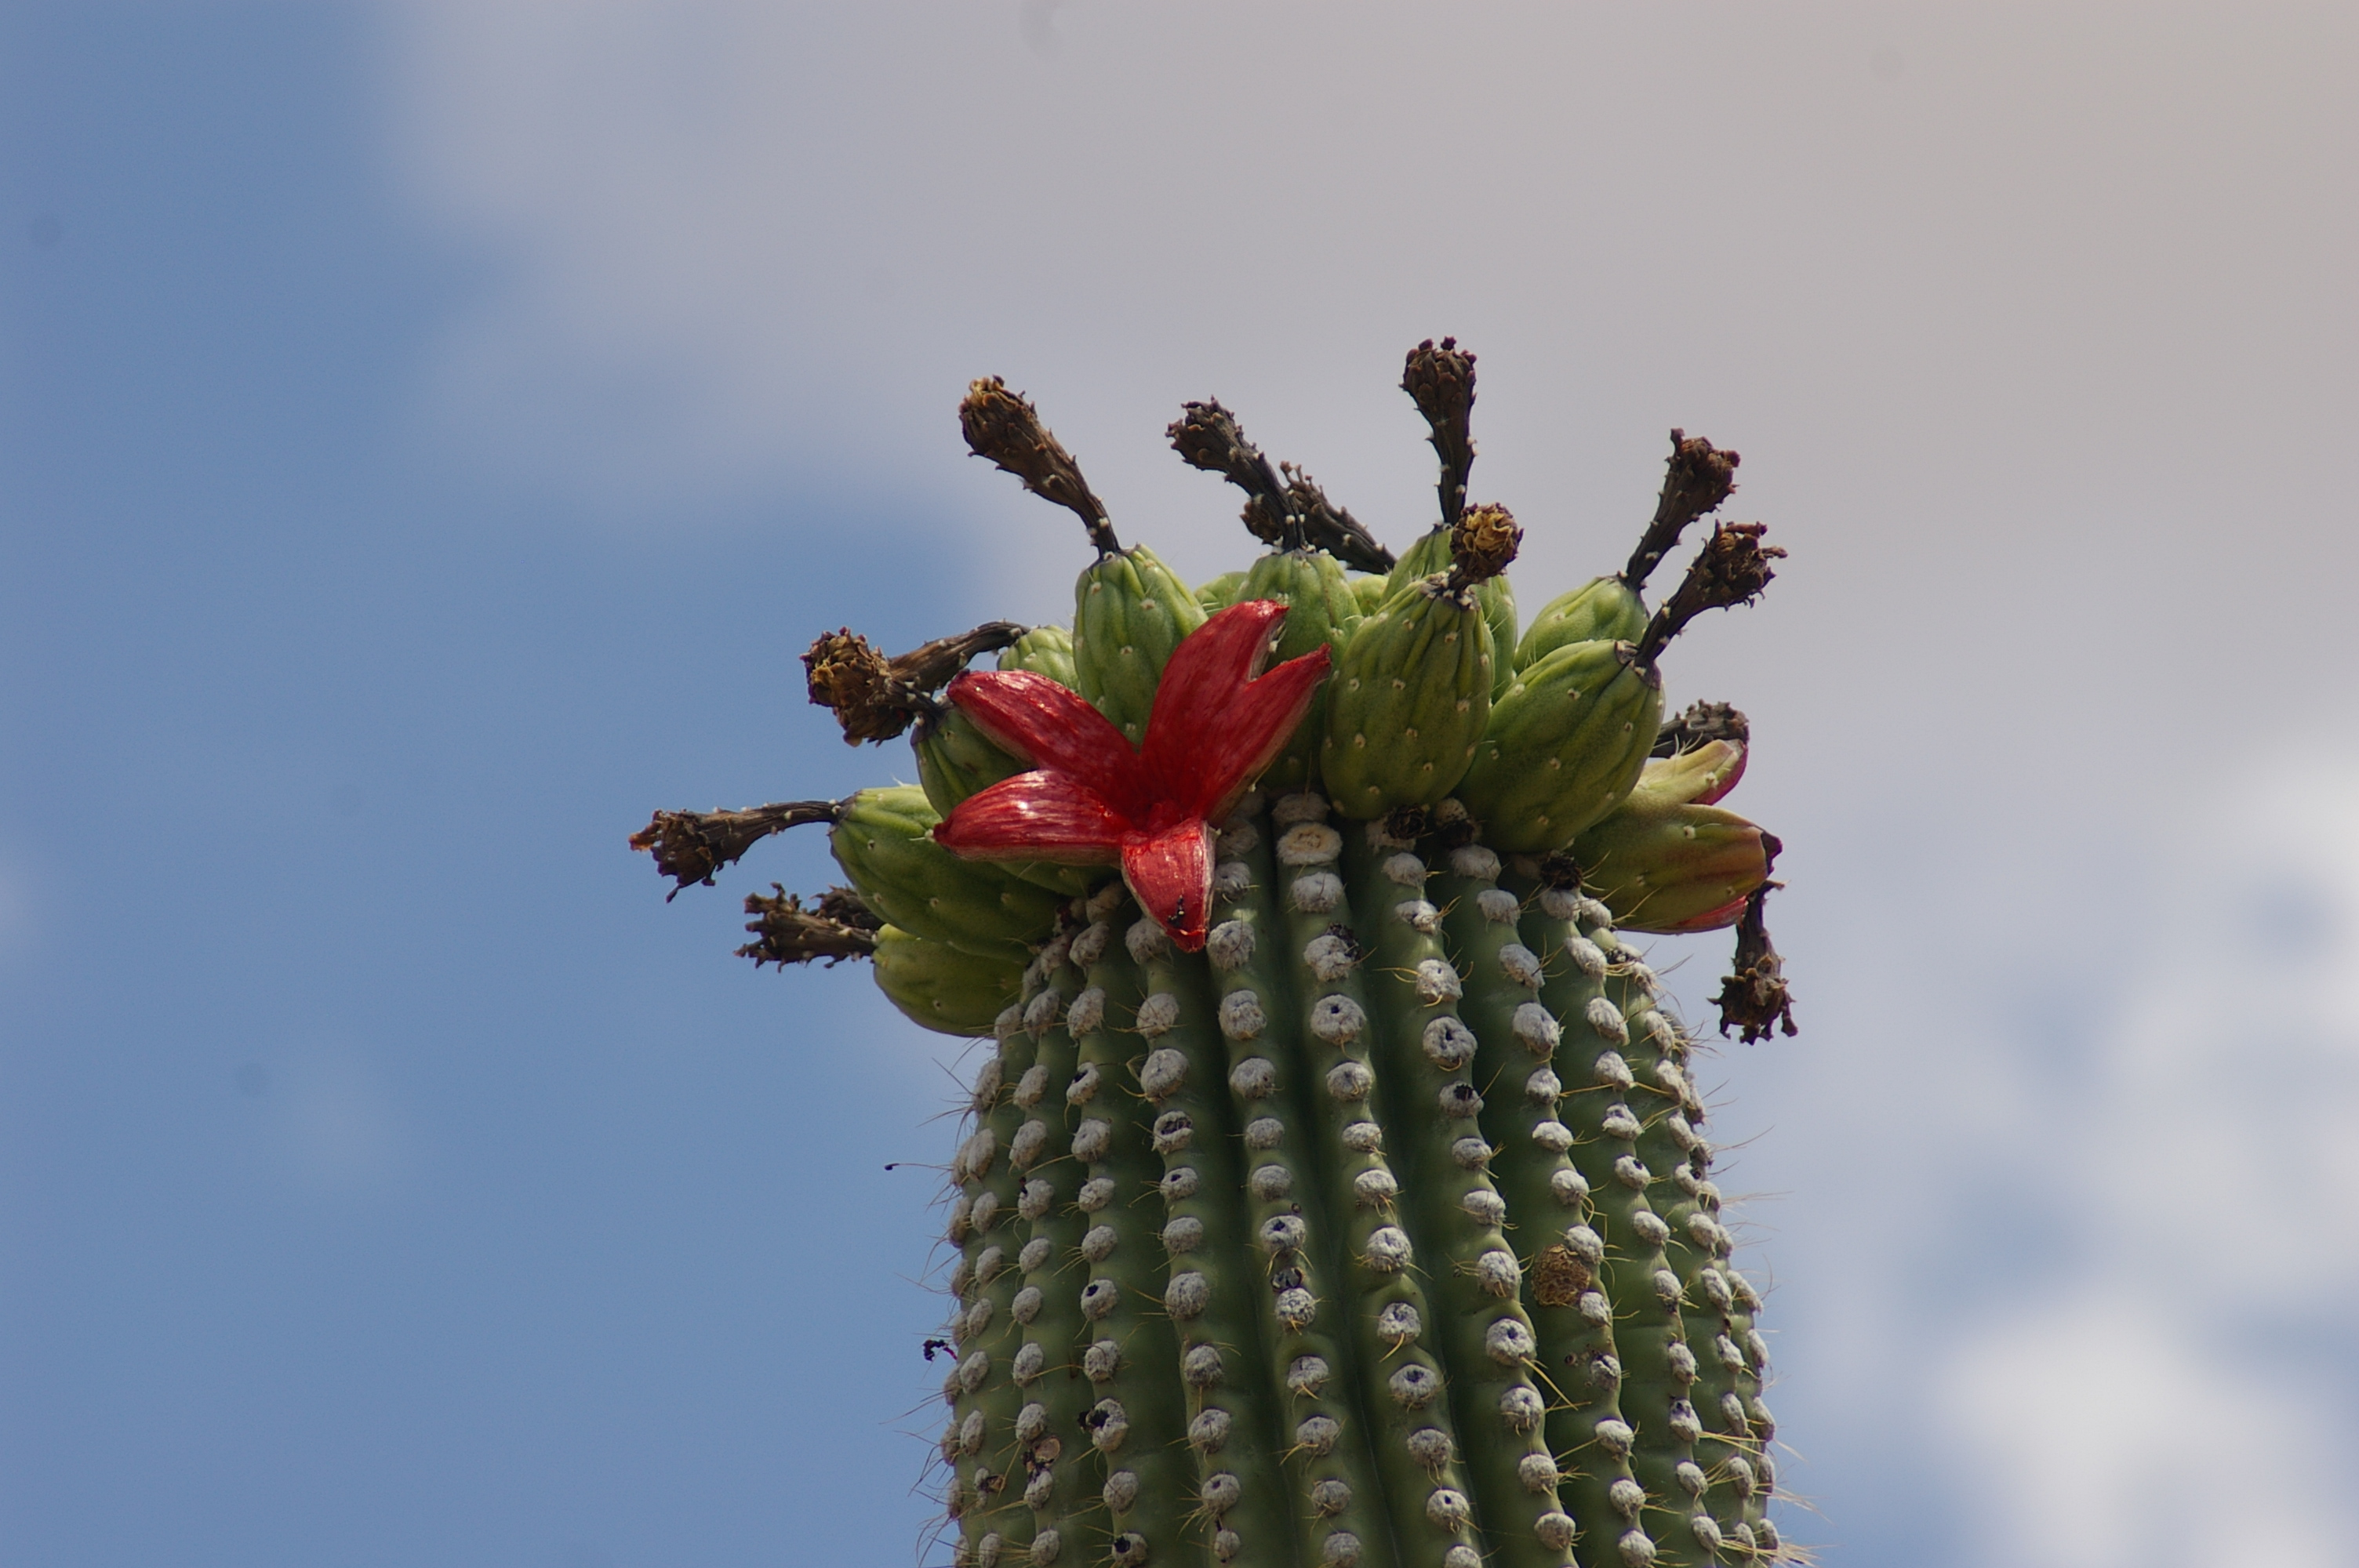 red saguaro fruit on the top of a cactus, against a blue sky